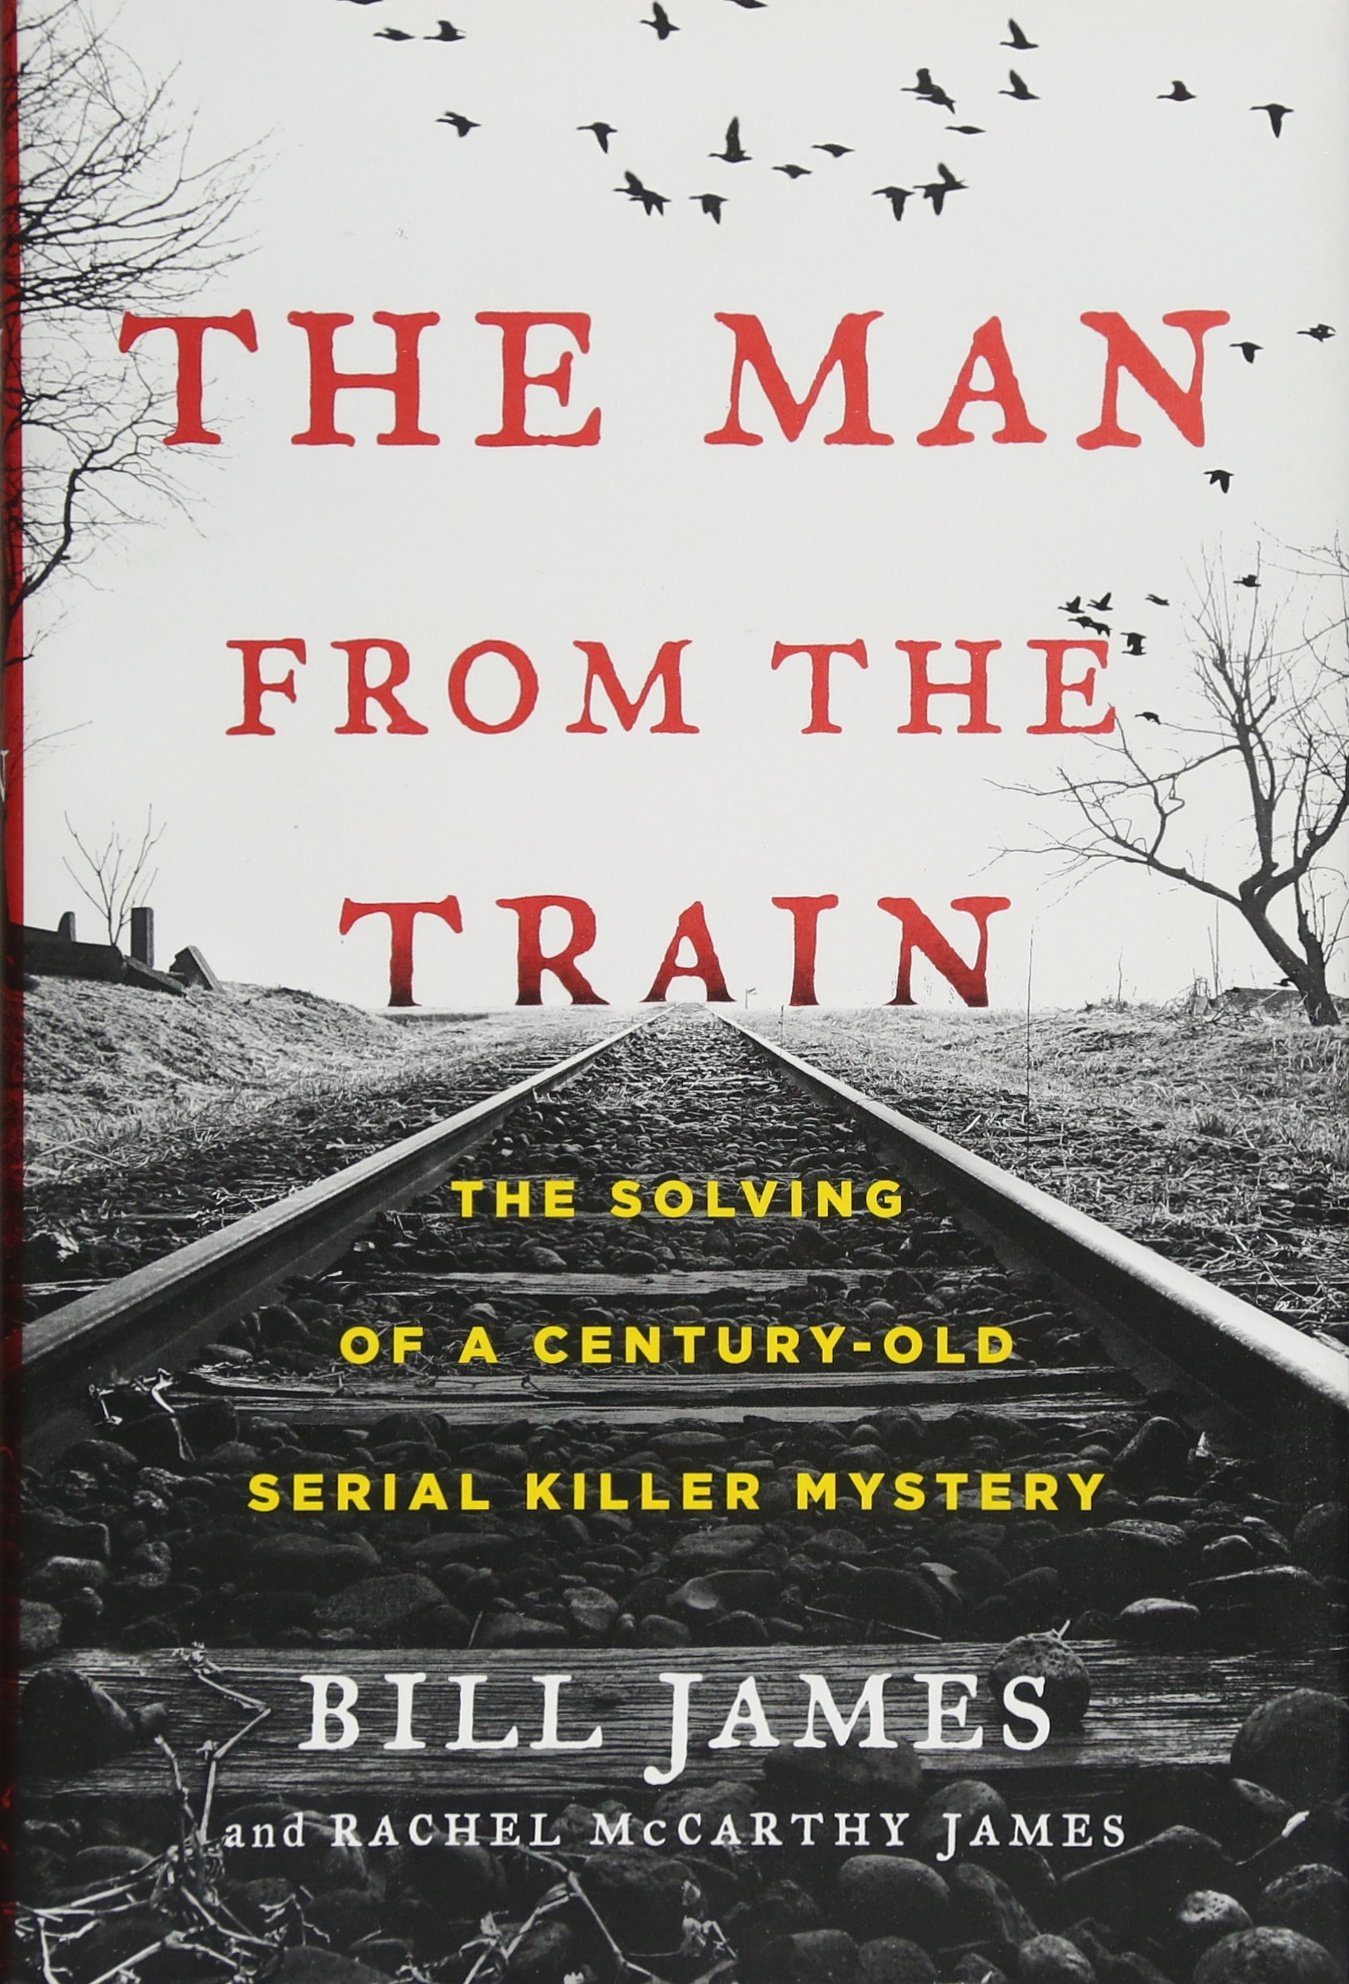 cover of The Man From the Train, featuring a scene of rural railroad tracks